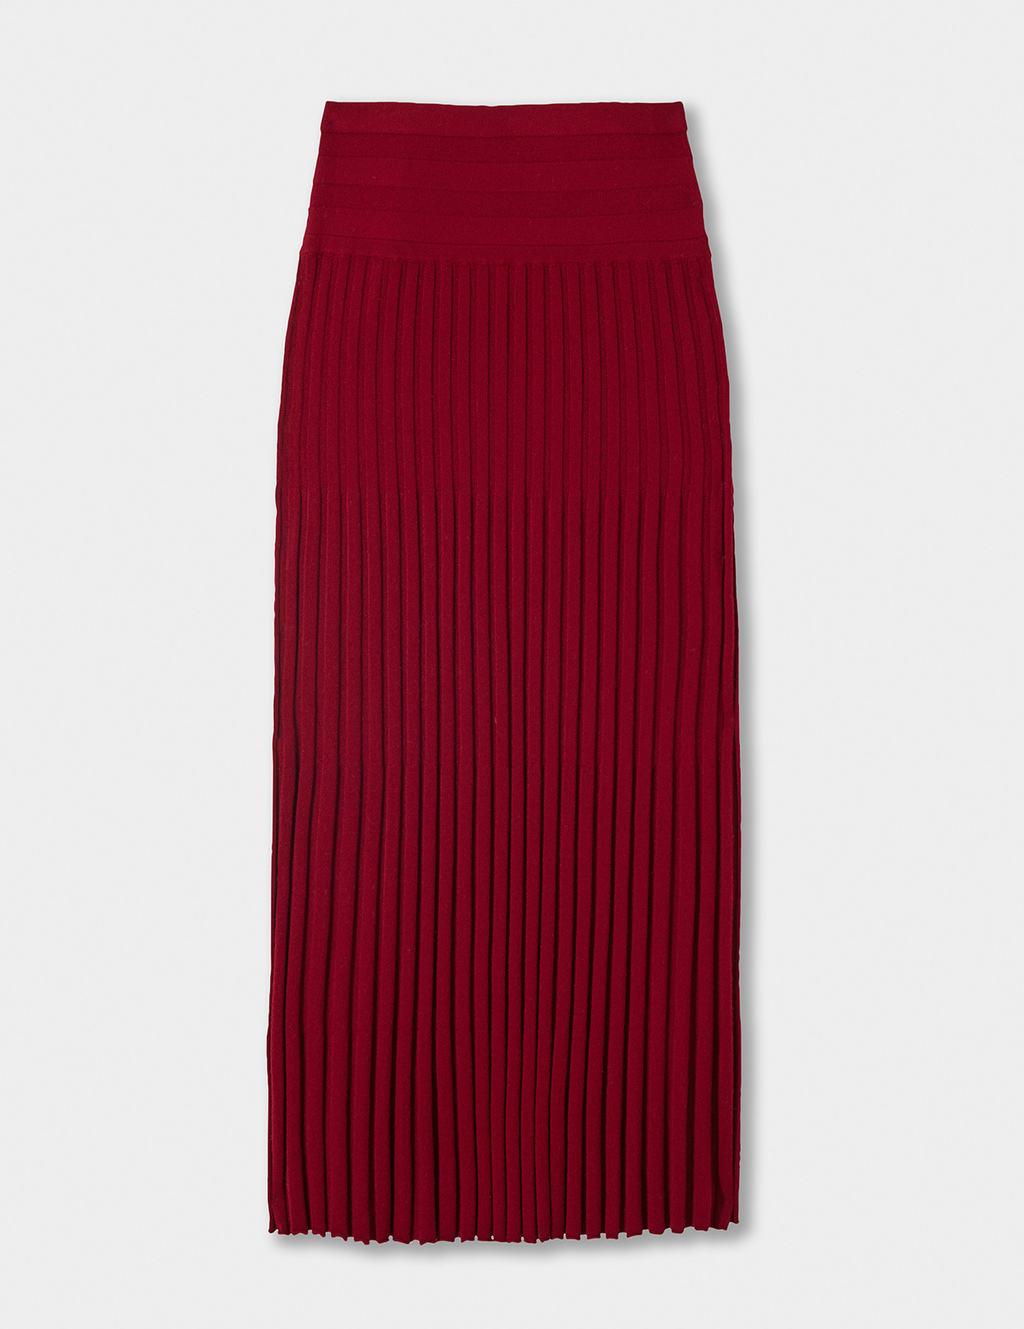 Merino Wool Pleated Skirt - length: calf length; pattern: plain; style: pleated; waist: high rise; predominant colour: true red; fibres: wool - 100%; occasions: occasion, creative work; fit: straight cut; pattern type: fabric; texture group: woven light midweight; season: a/w 2016; wardrobe: highlight